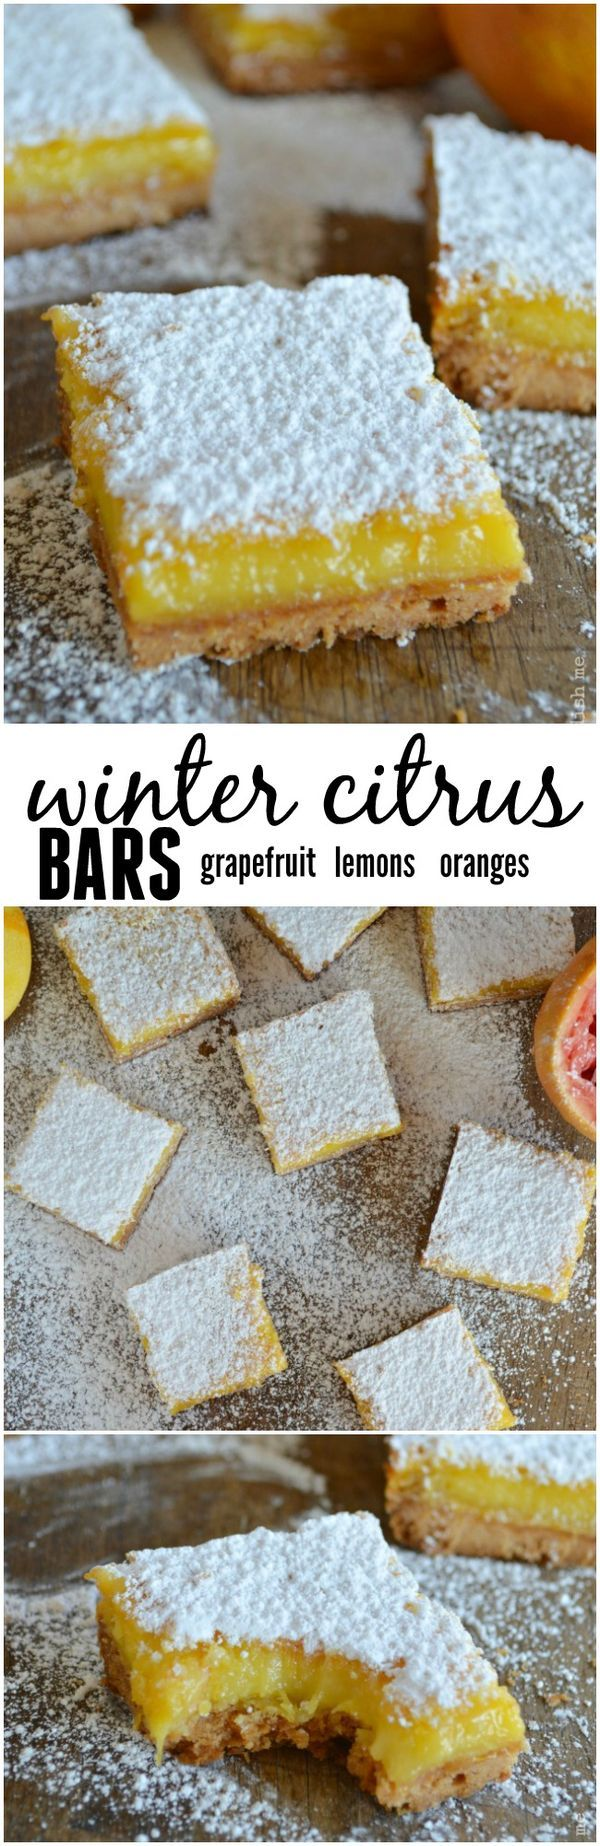 Winter Citrus Bars are sweet and slightly tart with all the flavors of my favorite winter citrus.